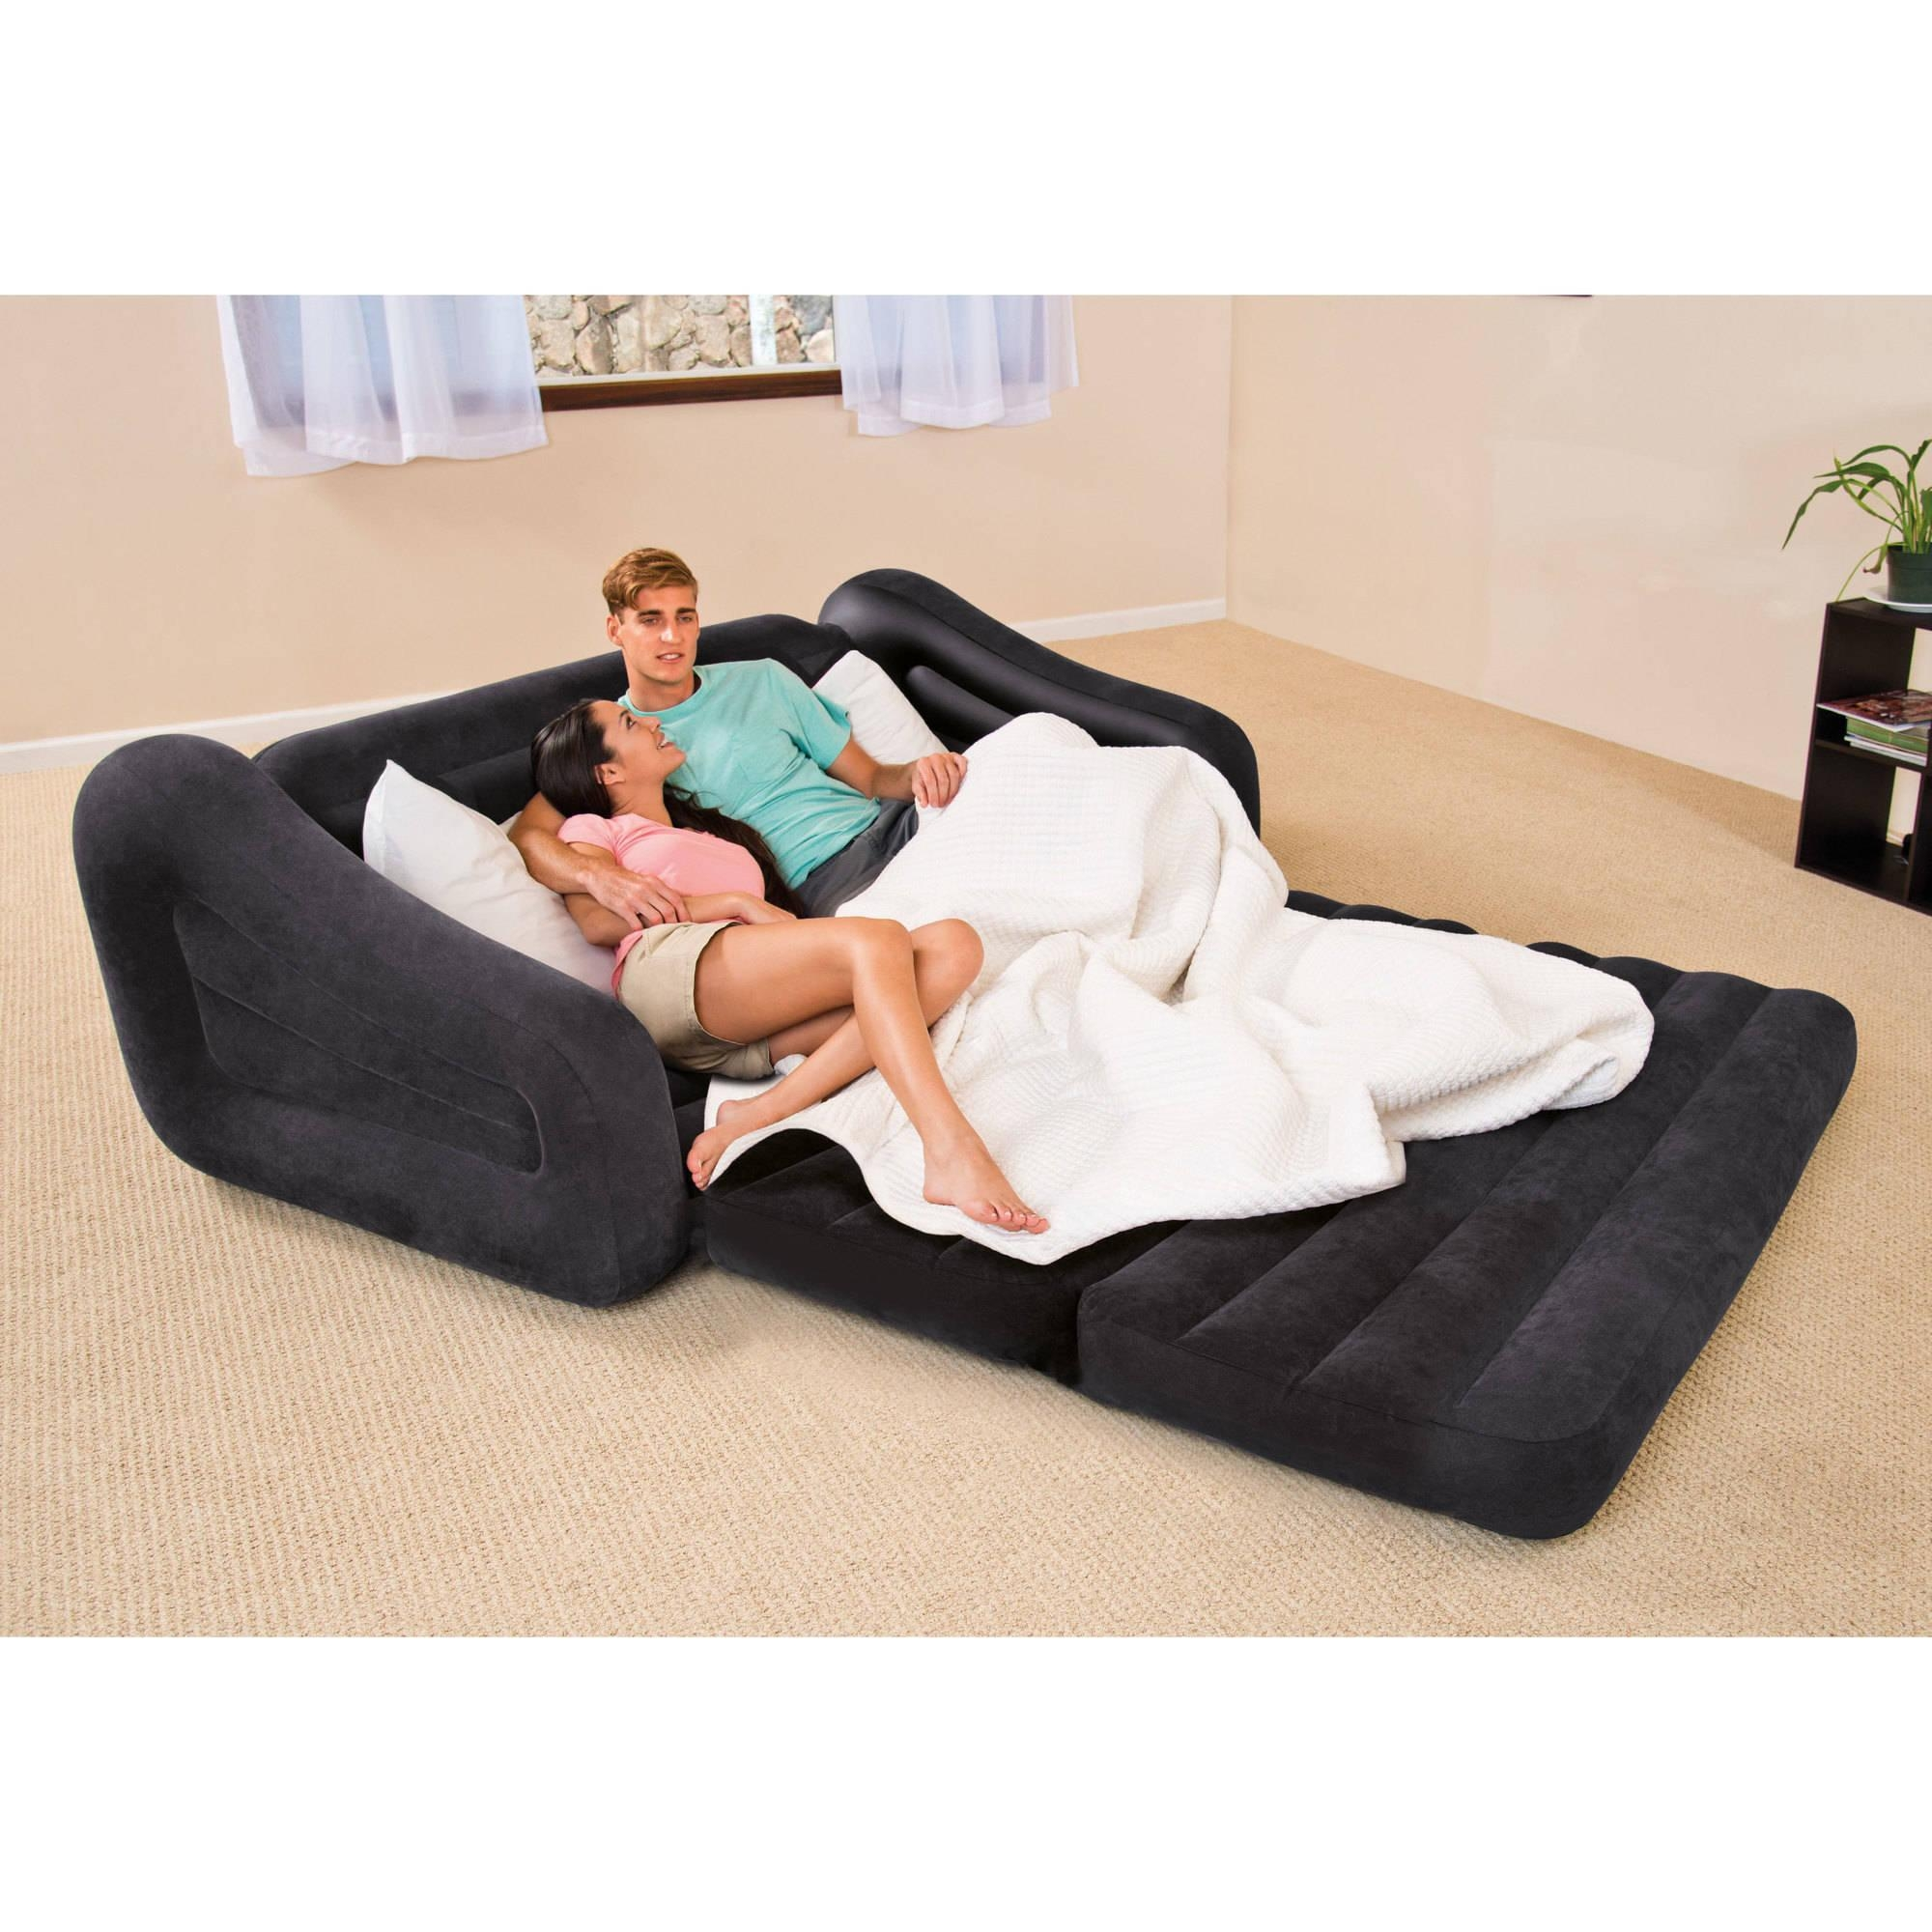 Intex Queen Inflatable Pull Out Sofa Bed – Walmart Pertaining To Inflatable Full Size Mattress (Image 10 of 20)